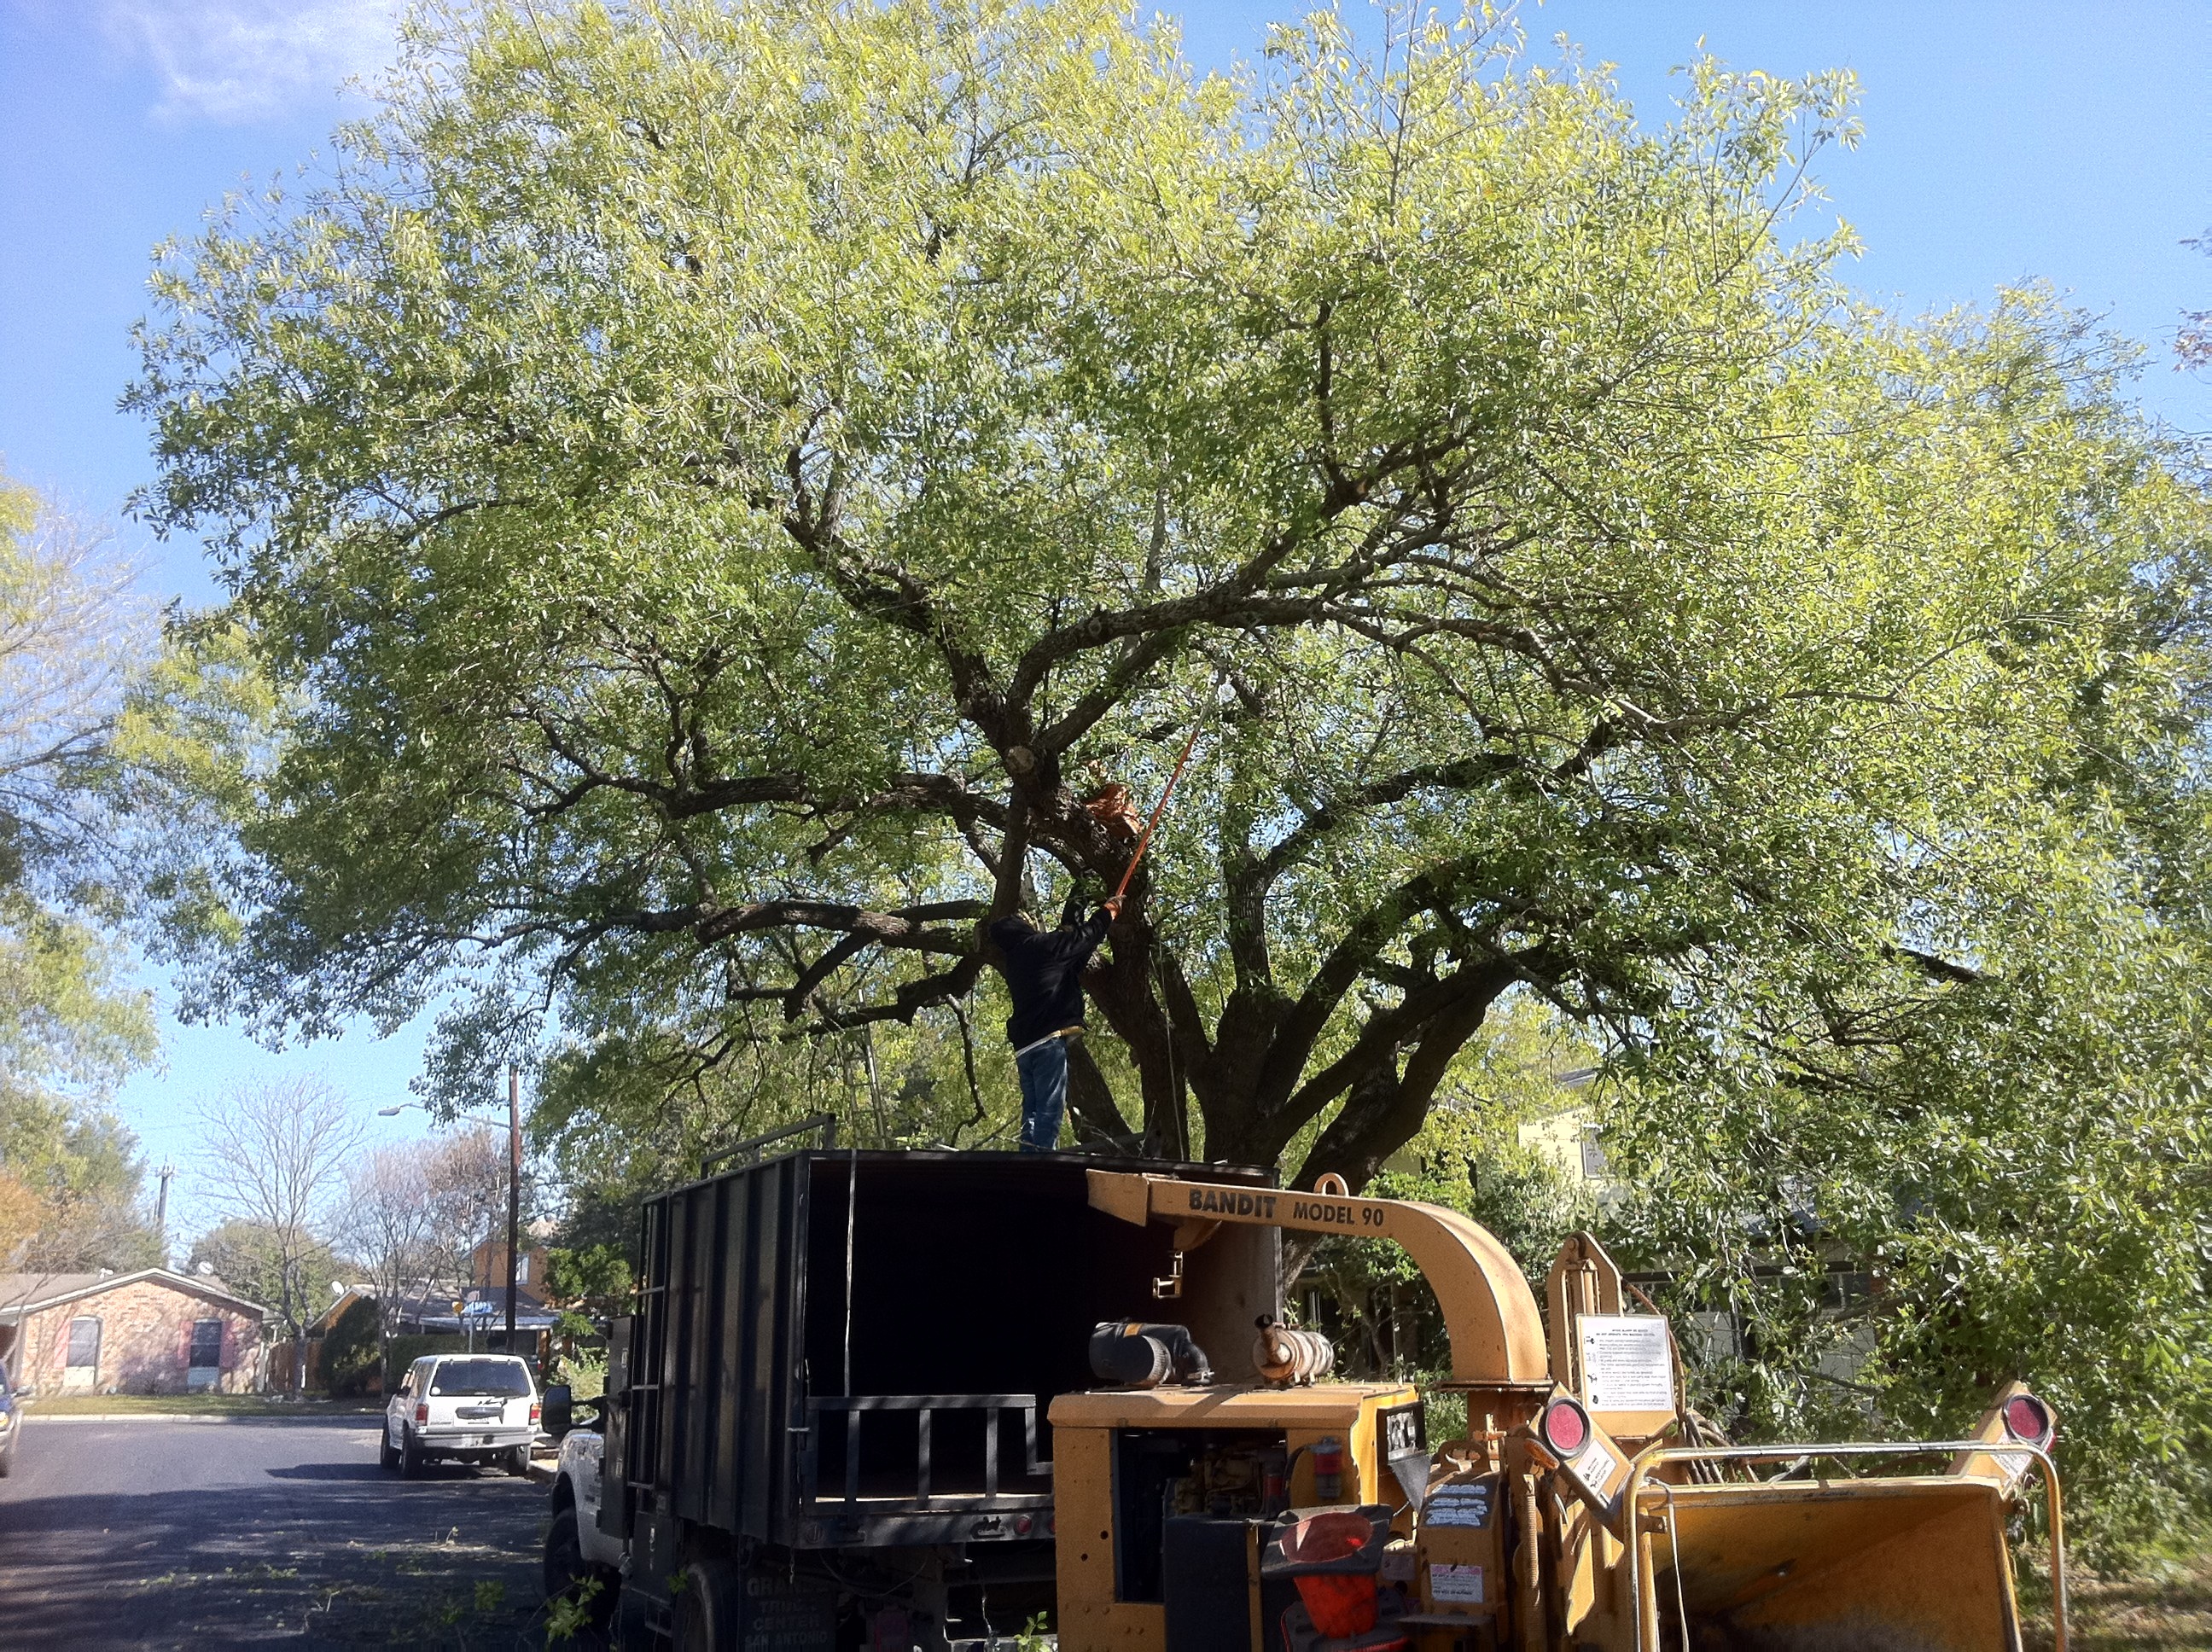 Tree pruning-Canopy Tree Service & Tree Pruning Reasons Are Many--Canopy Tree Service (210) 441-7071